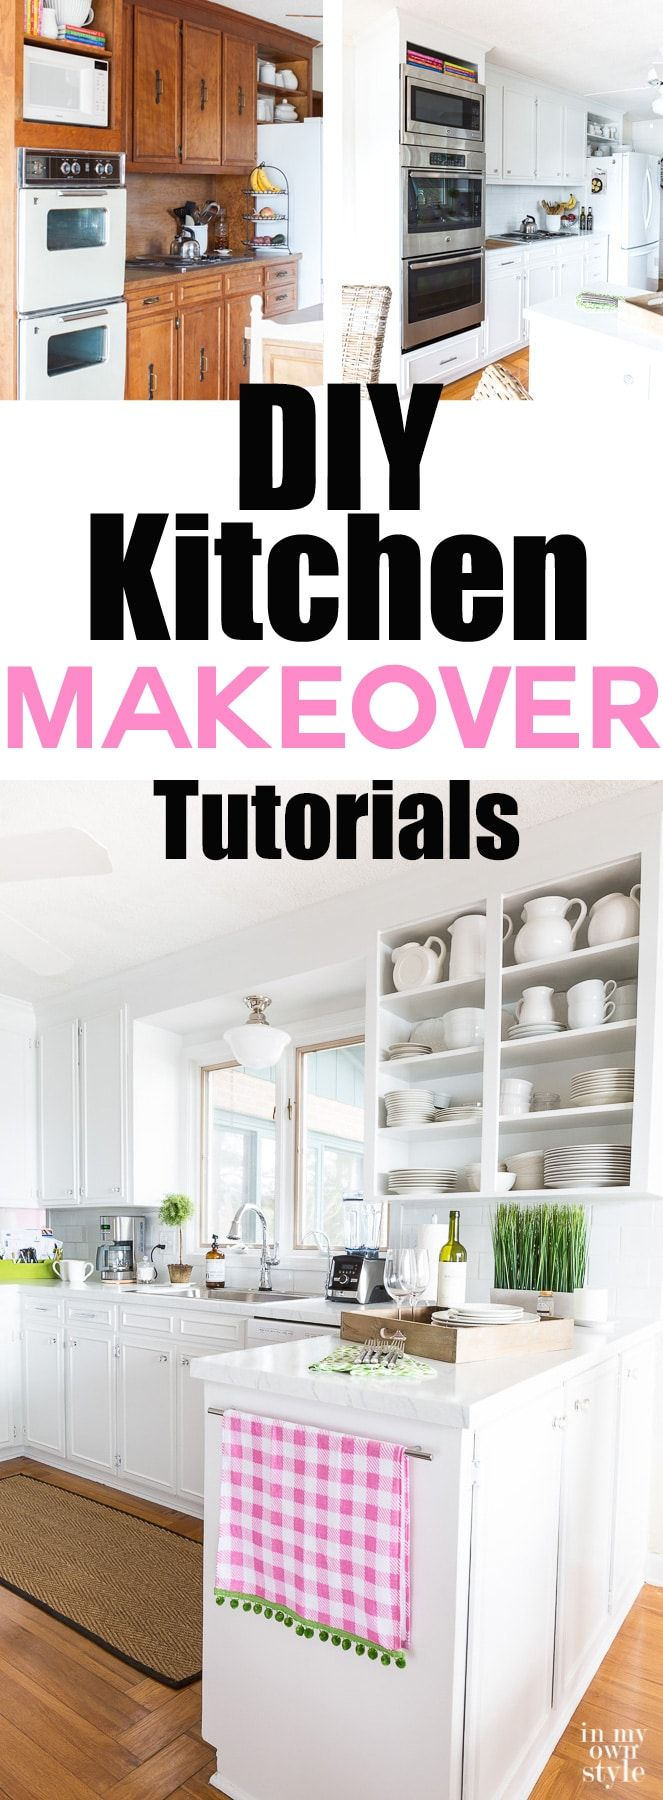 DIY Kitchen Makeover On A Budget Tutorials And Tips To Help You Transform  Your Kitchen.